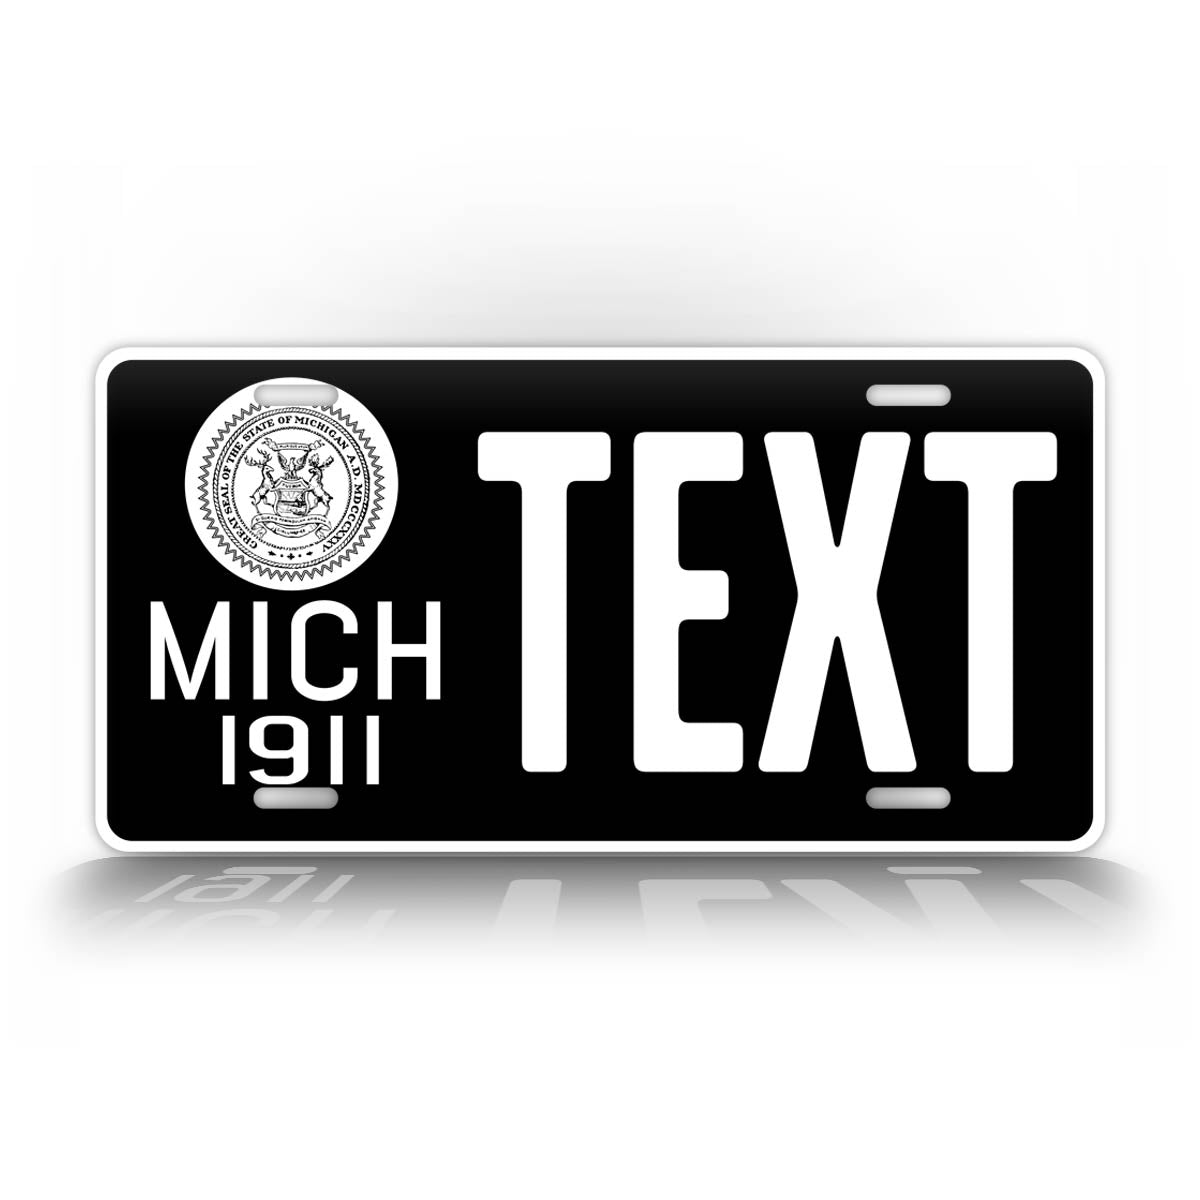 Custom Text Michigan Antique 1911 Novelty License Plate